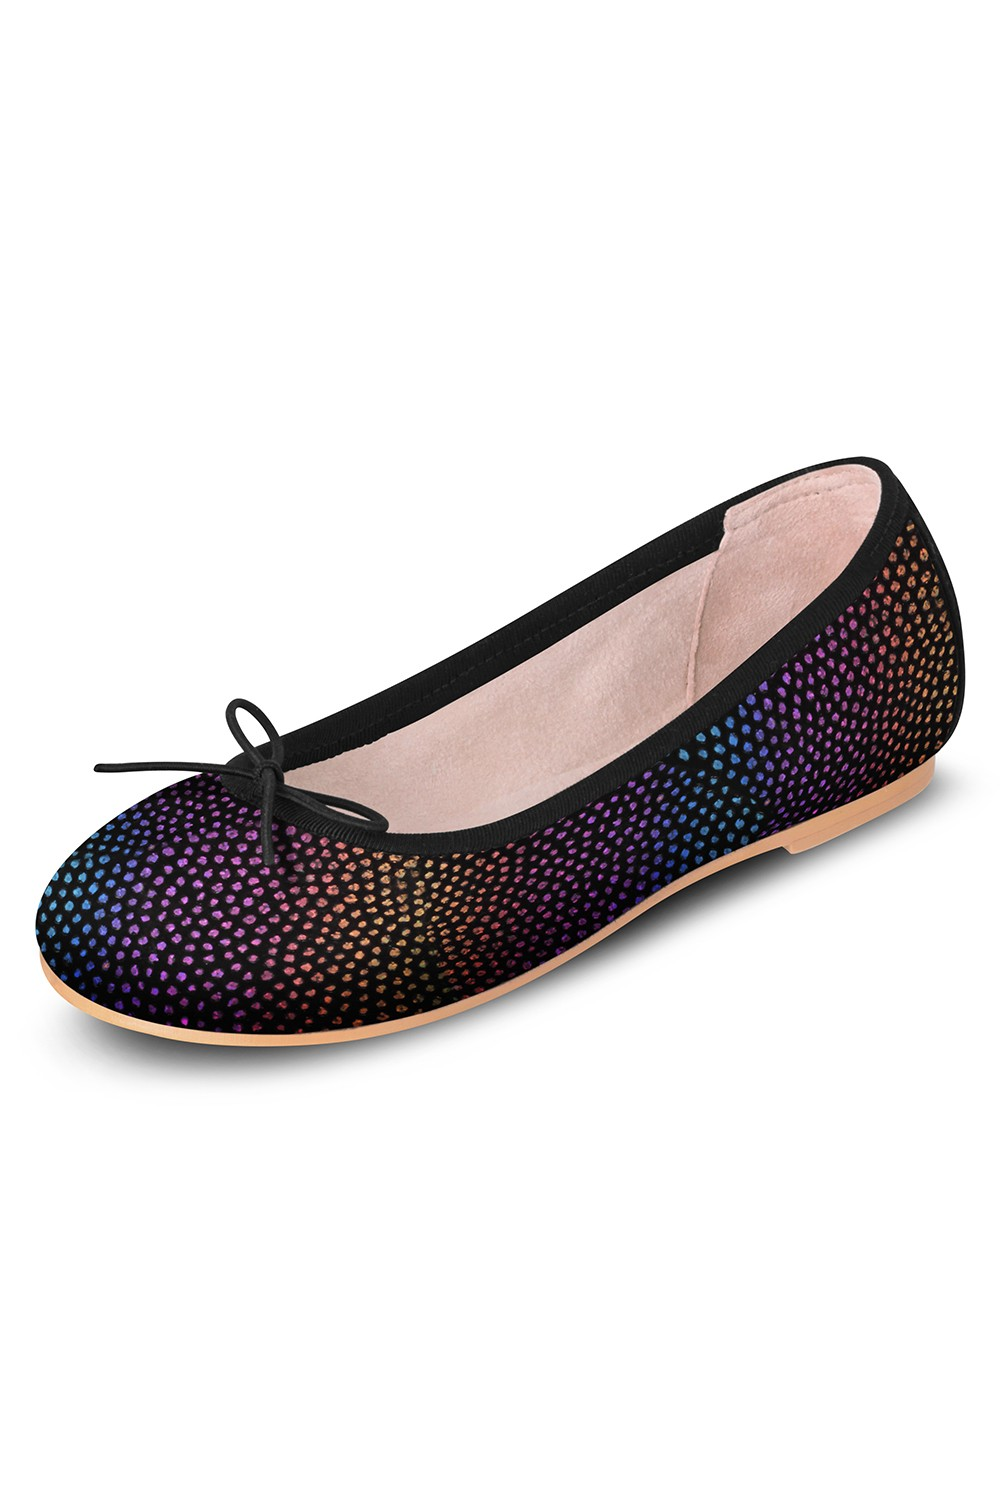 Girls Fashion Shoes